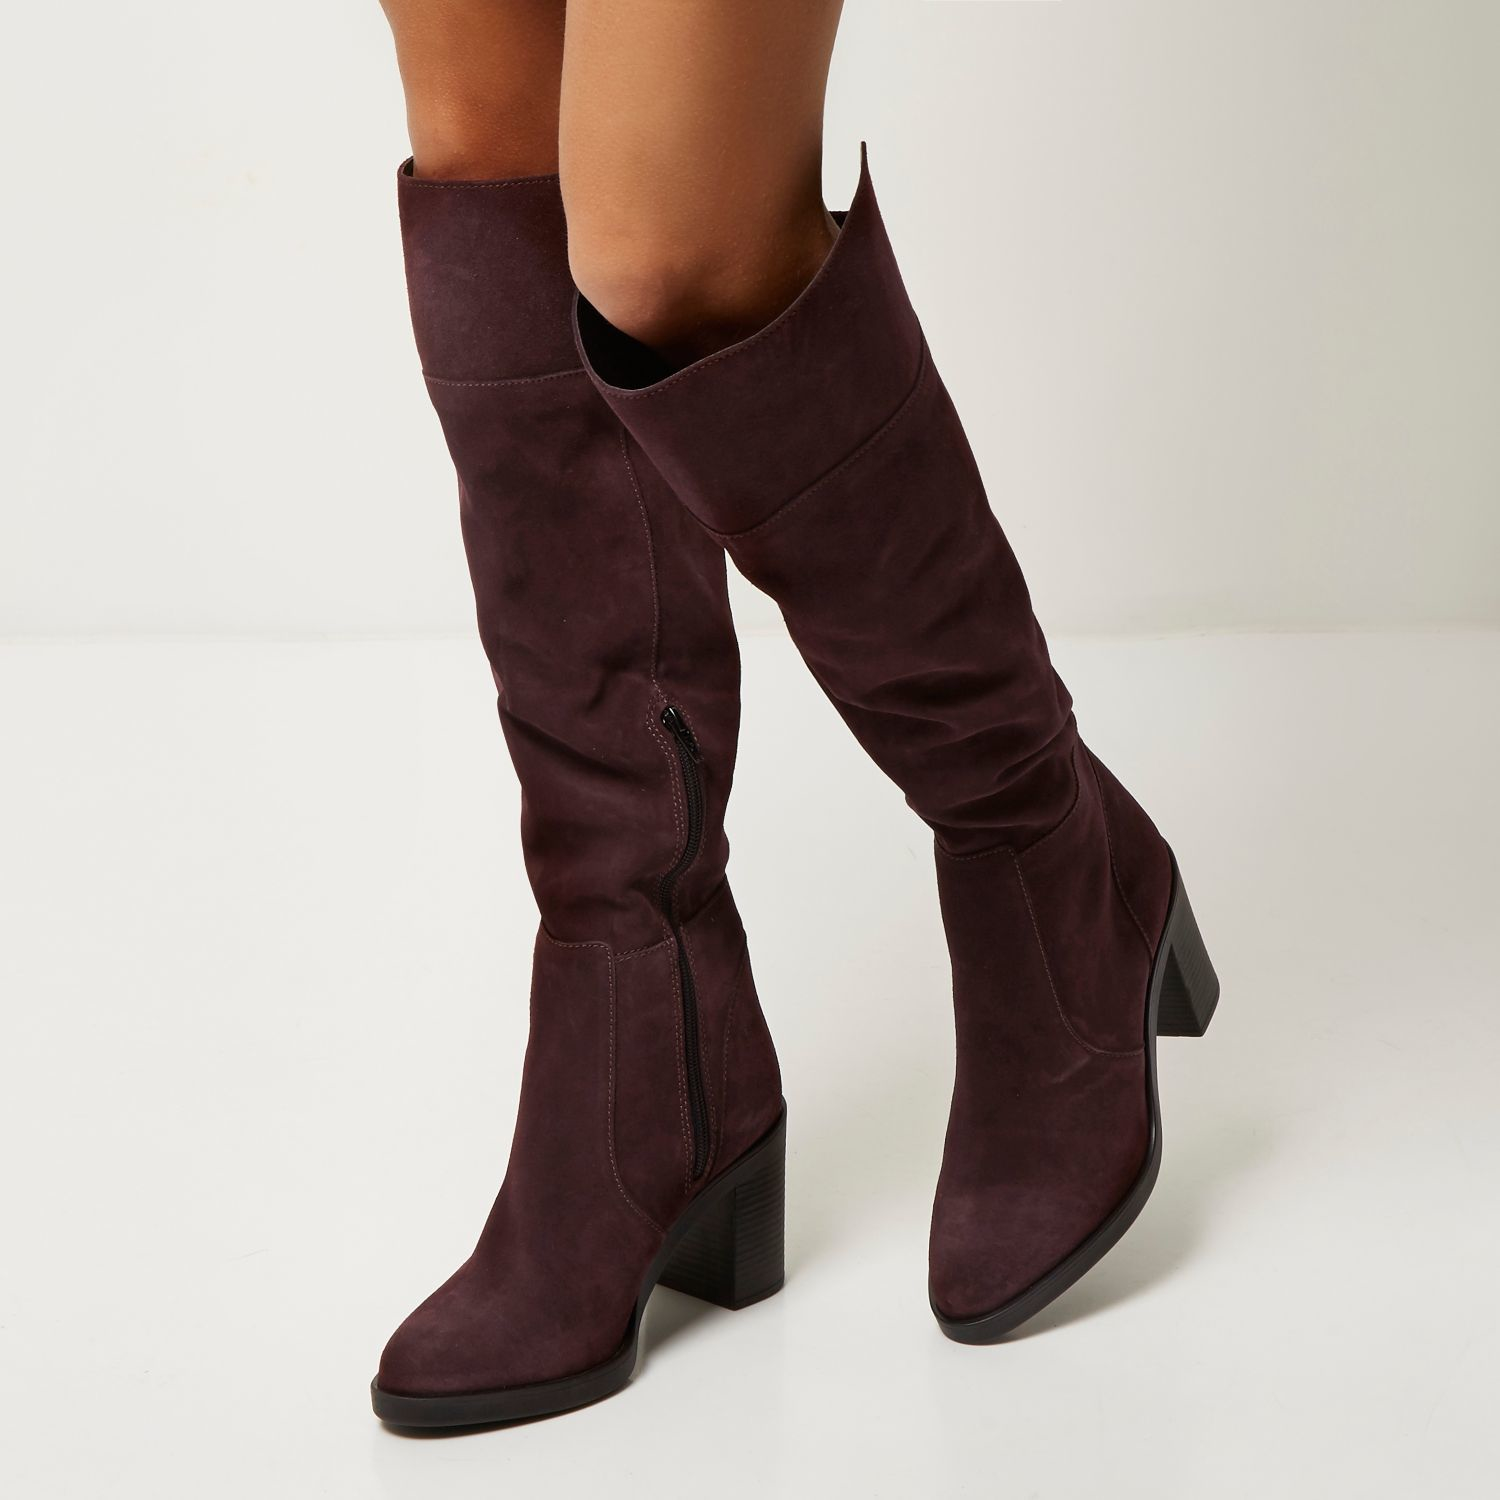 ad8abed2fb1 Lyst - River Island Dark Red Suede Knee High Boots in Red